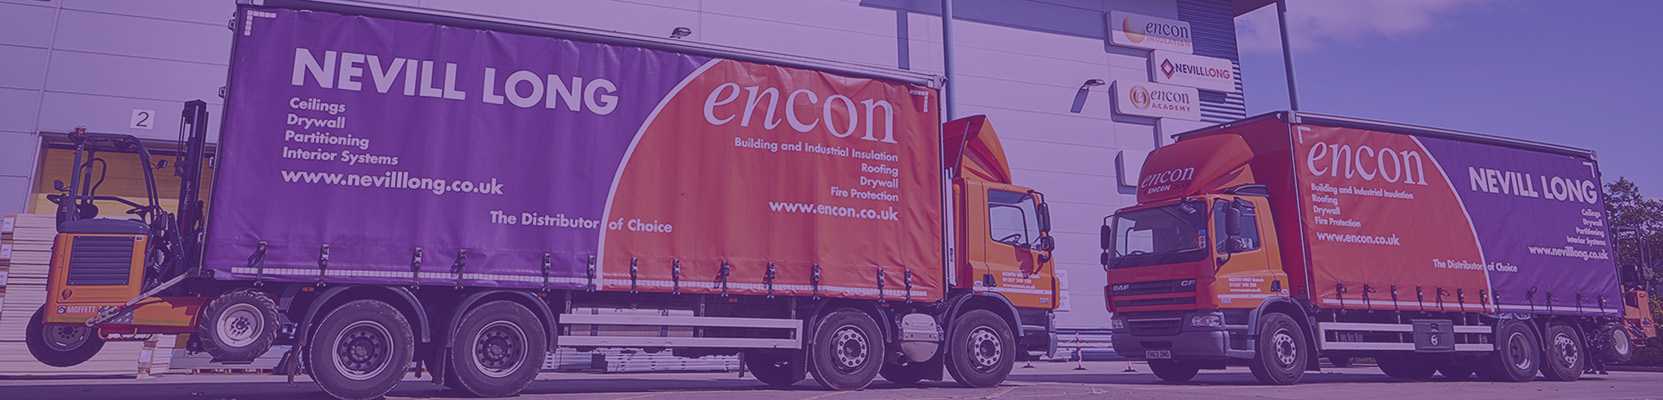 Encon and Nevill Long trucks in warehouse yard